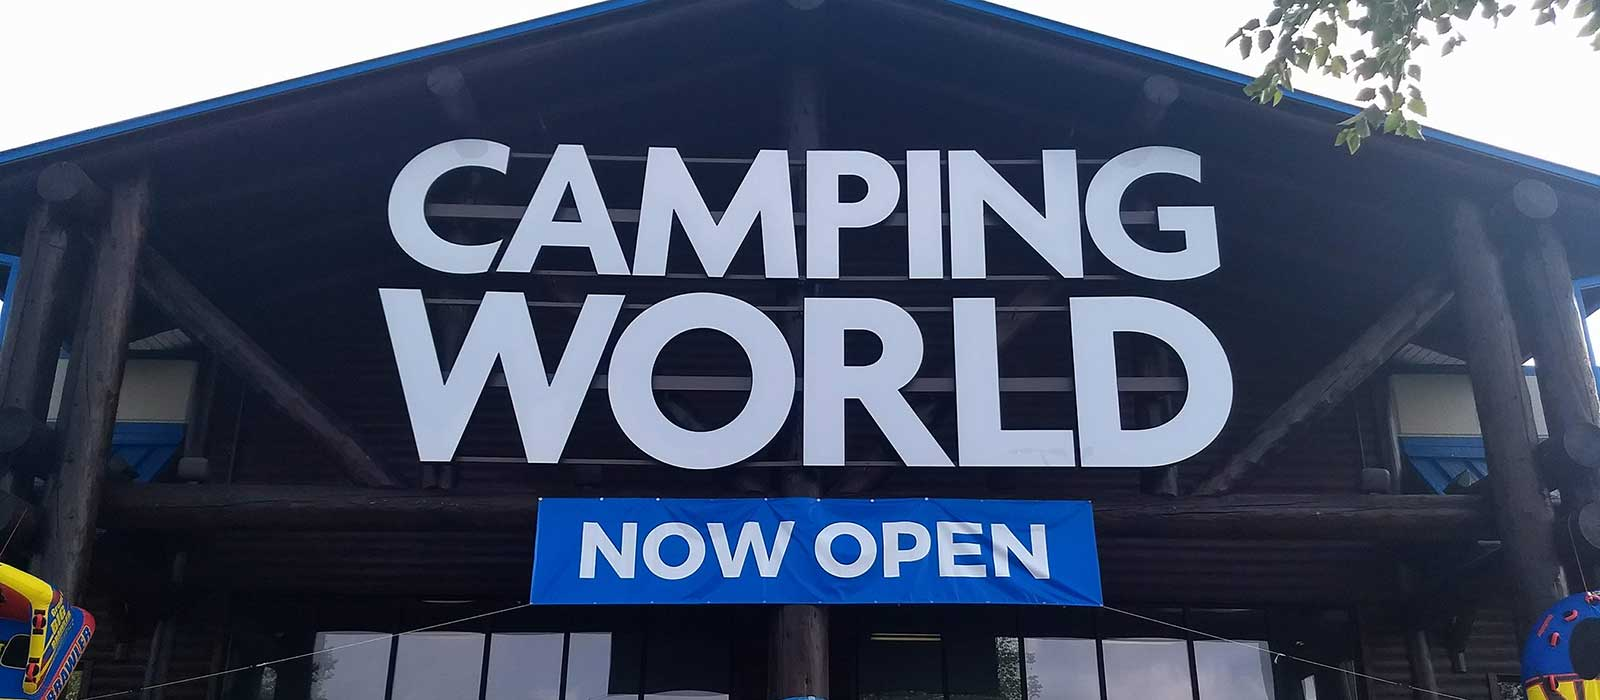 Camping World National Signage Channel Letters